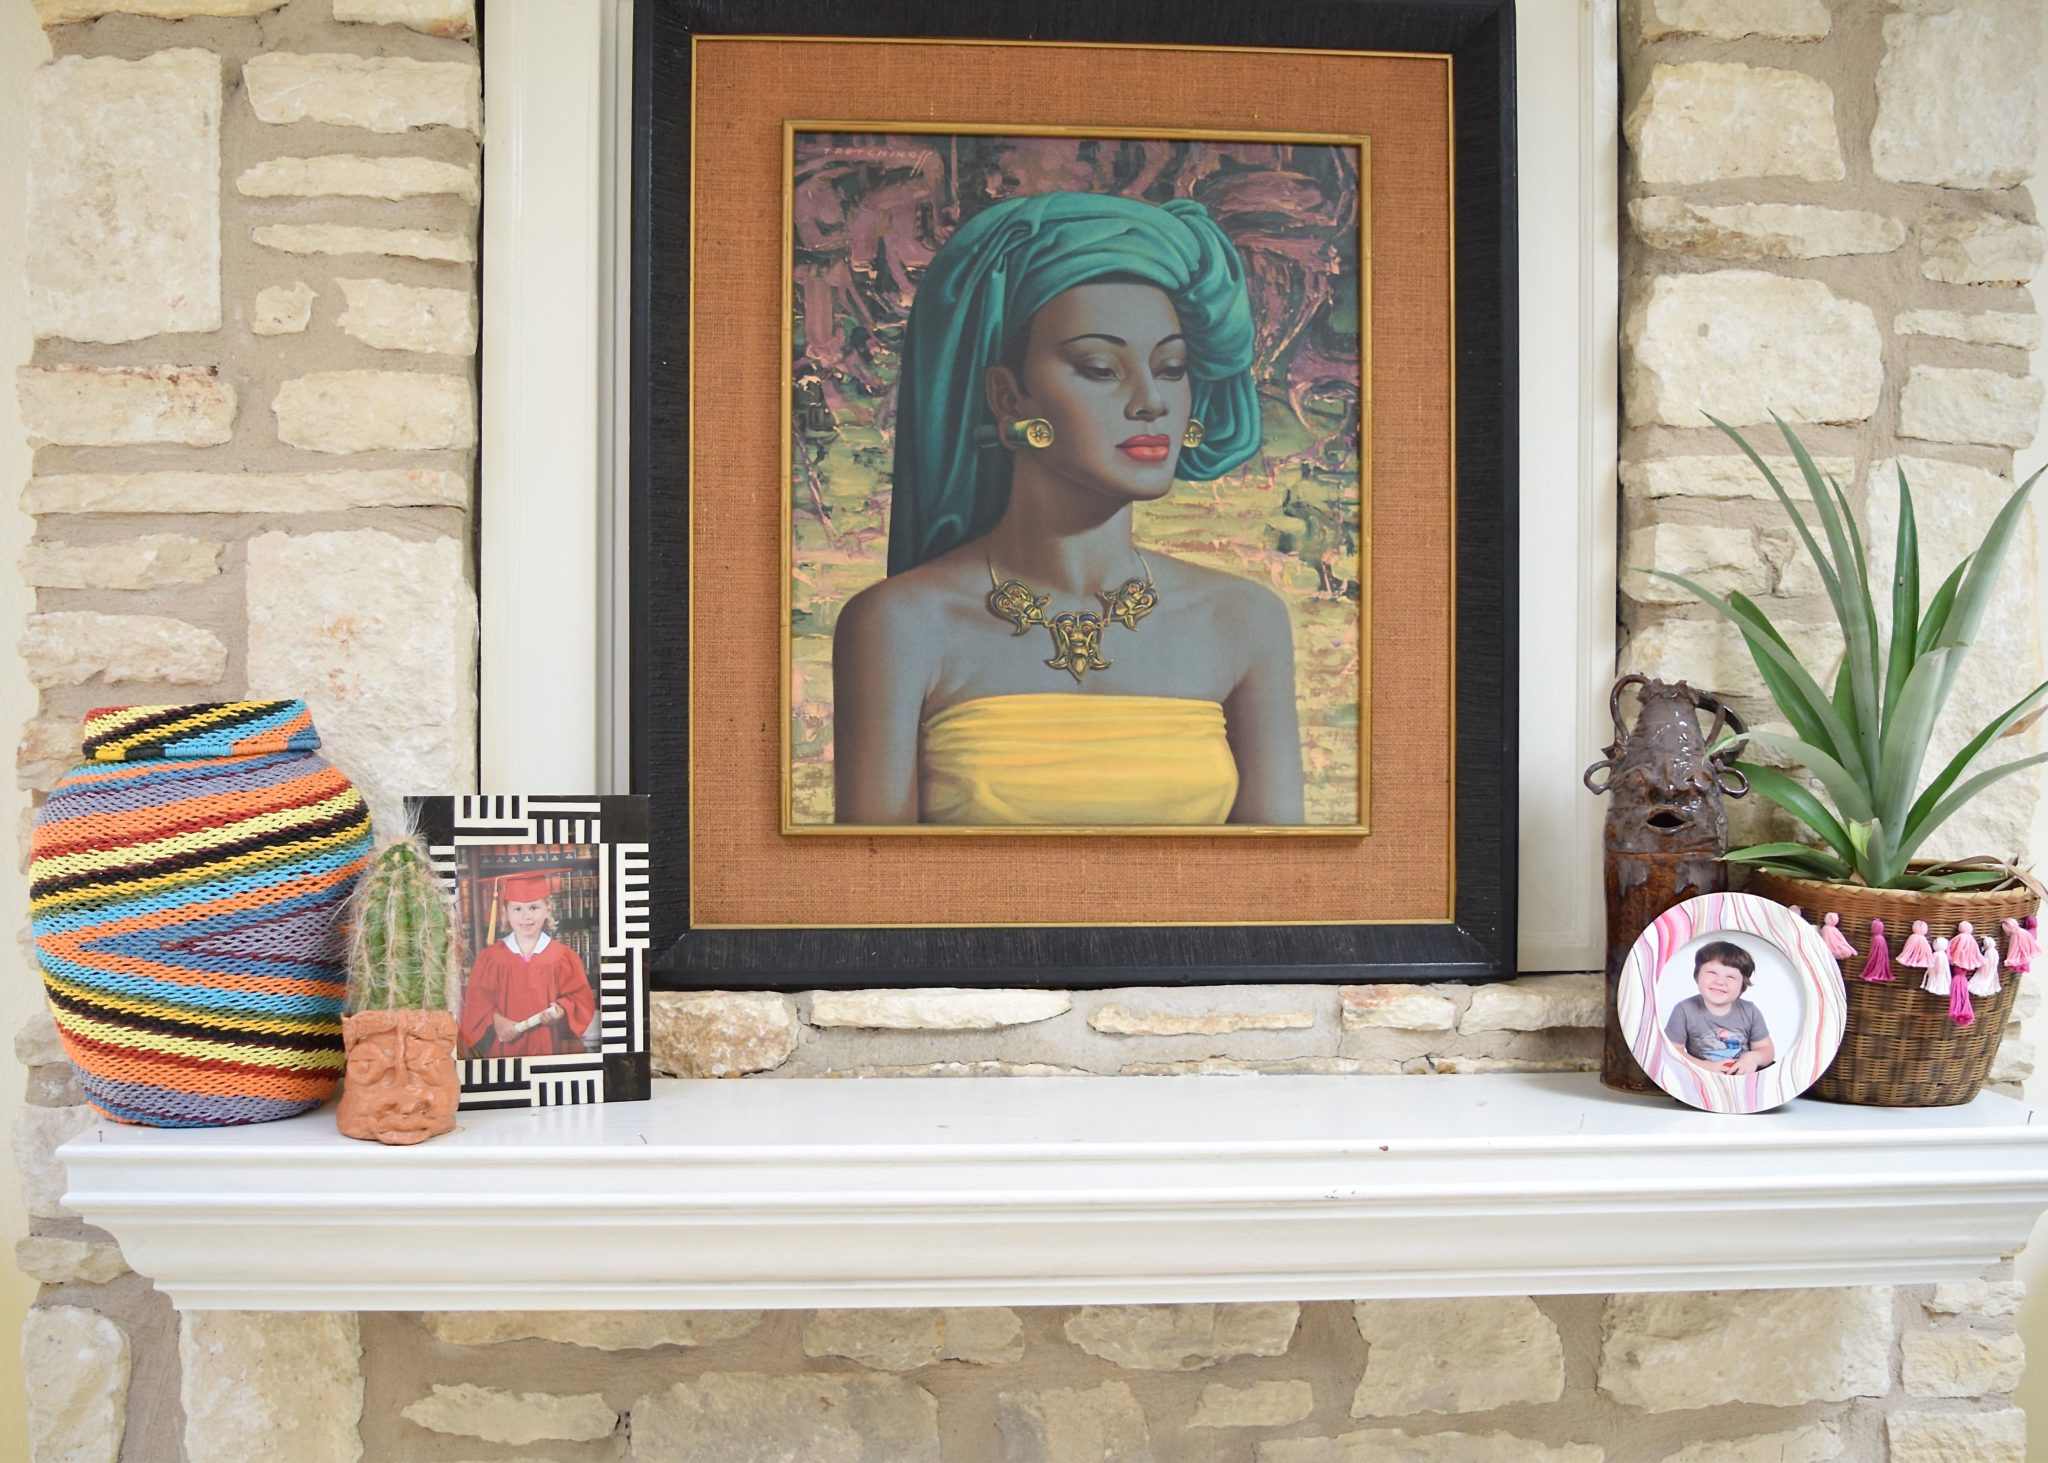 Jennifer Perkins Vladimir Tretchikoff above the mantle.